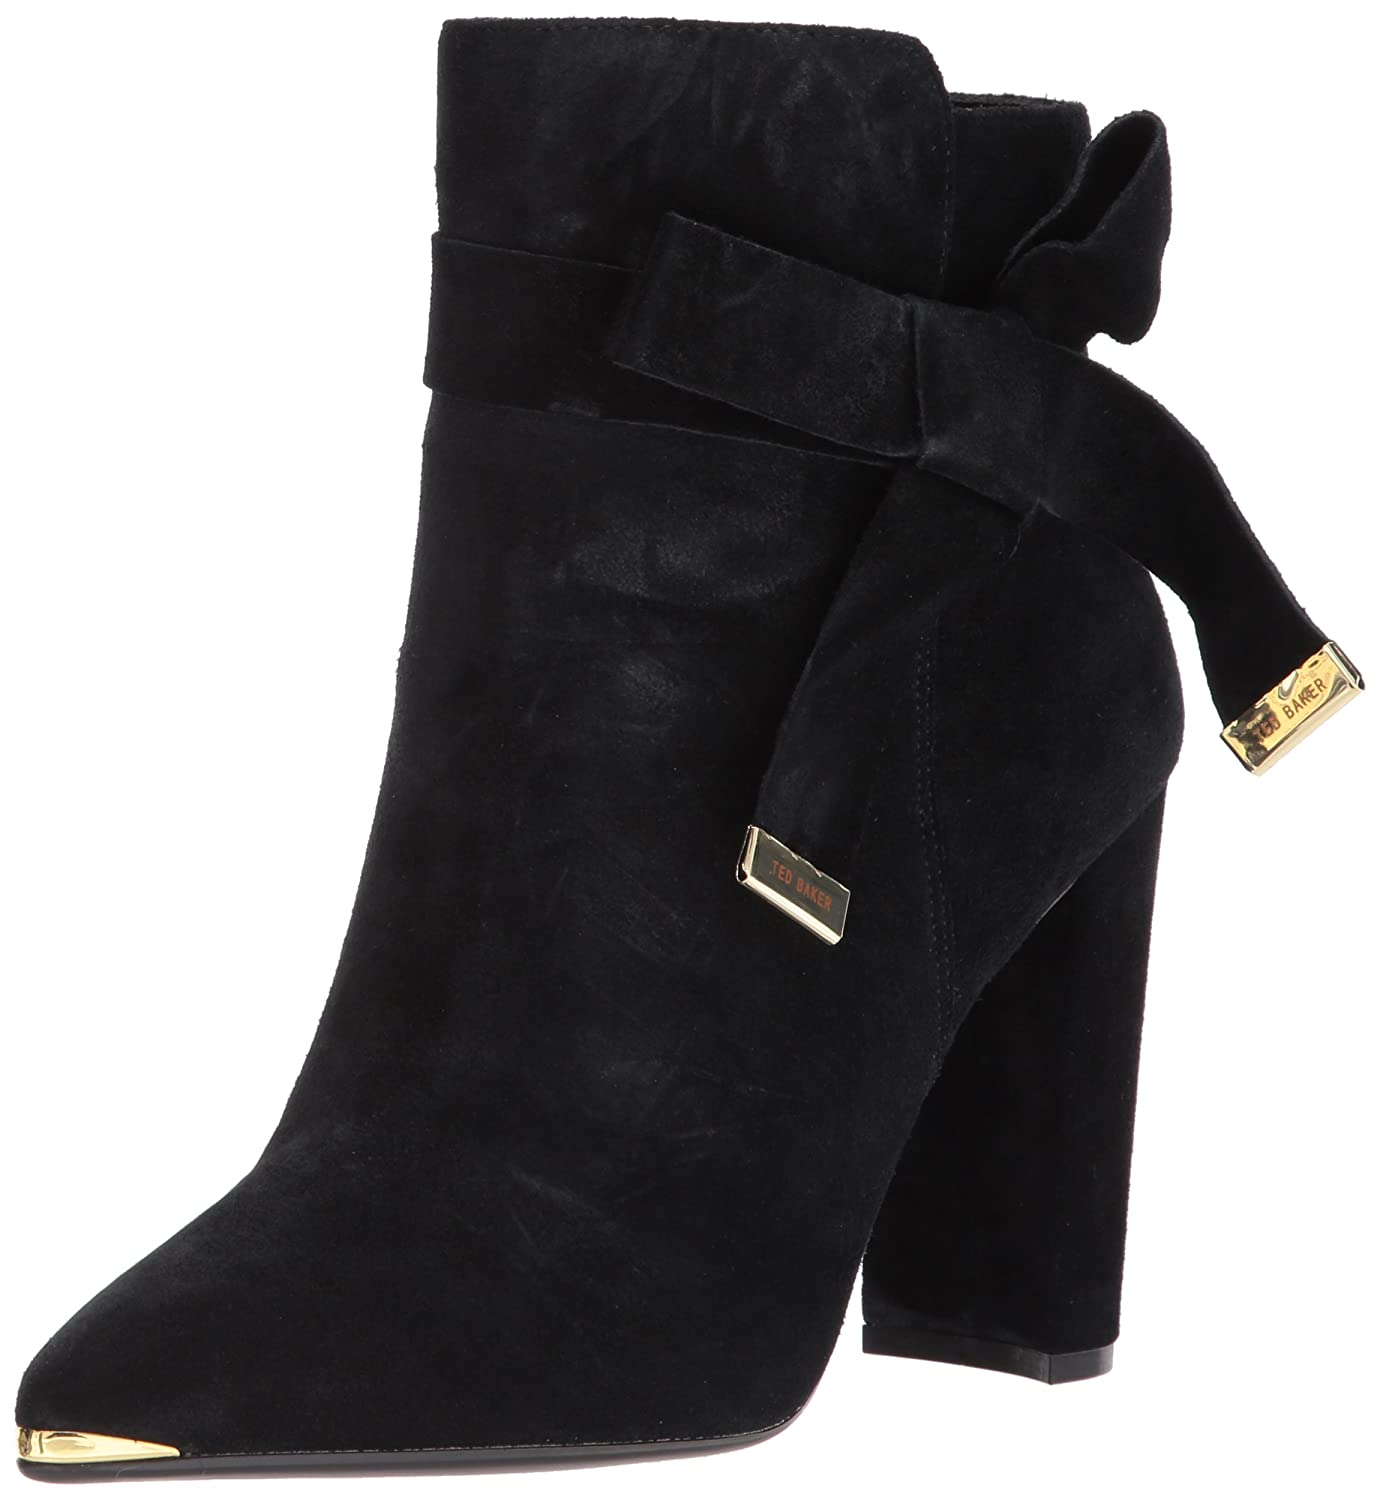 Ted Baker Women's Sailly Fashion Boot B072XNJJJR 7 B(M) US|Black